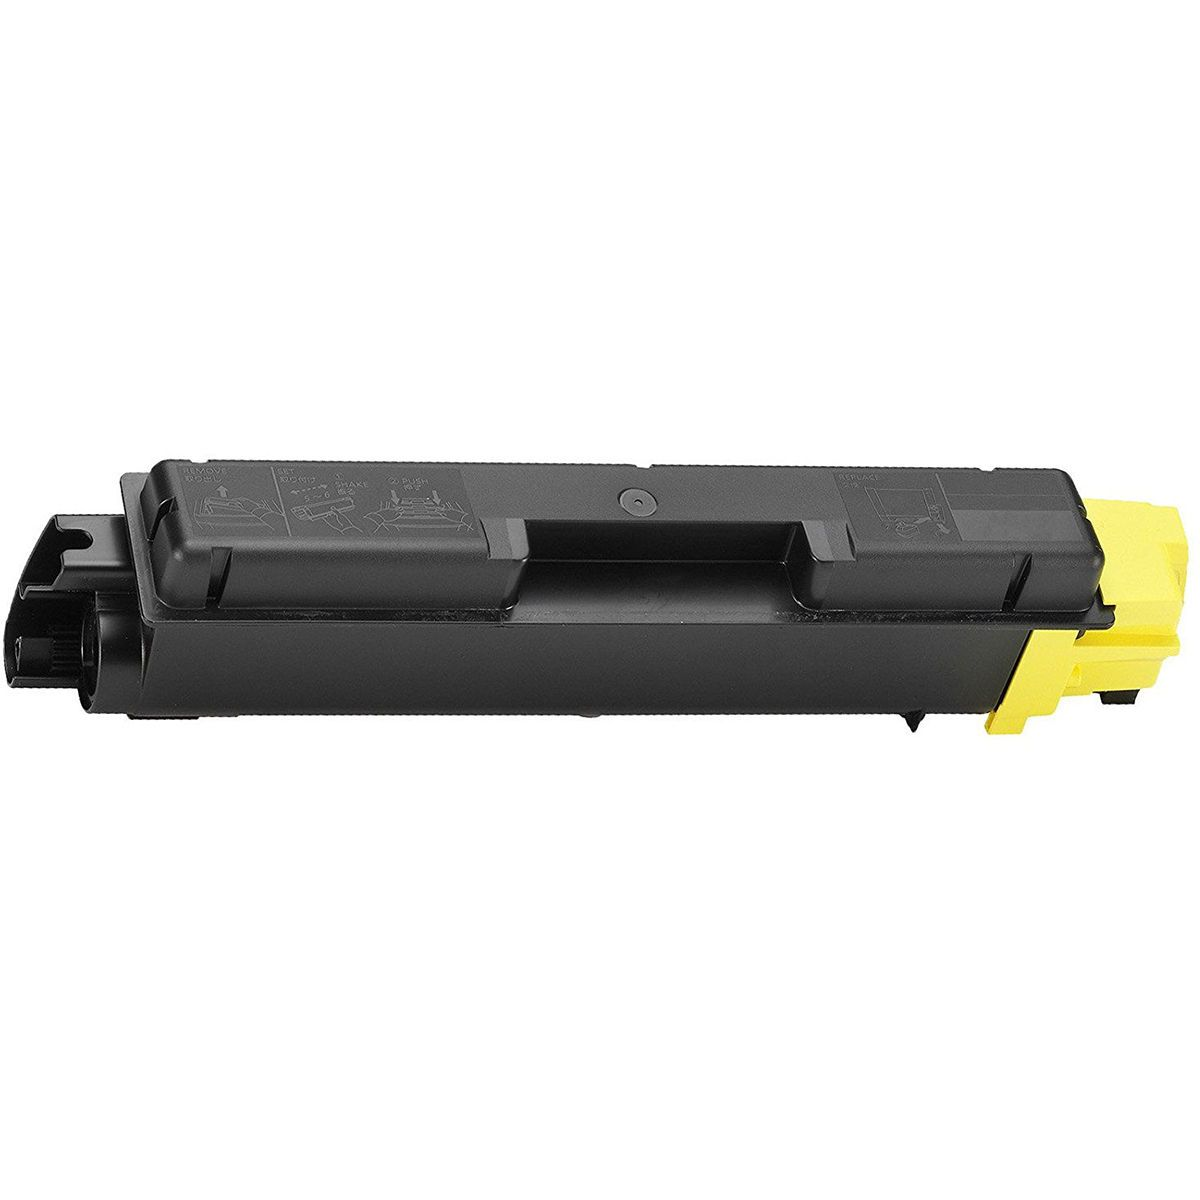 toner compat vel tk 582 amarelo para kyocera fs c5150dn. Black Bedroom Furniture Sets. Home Design Ideas